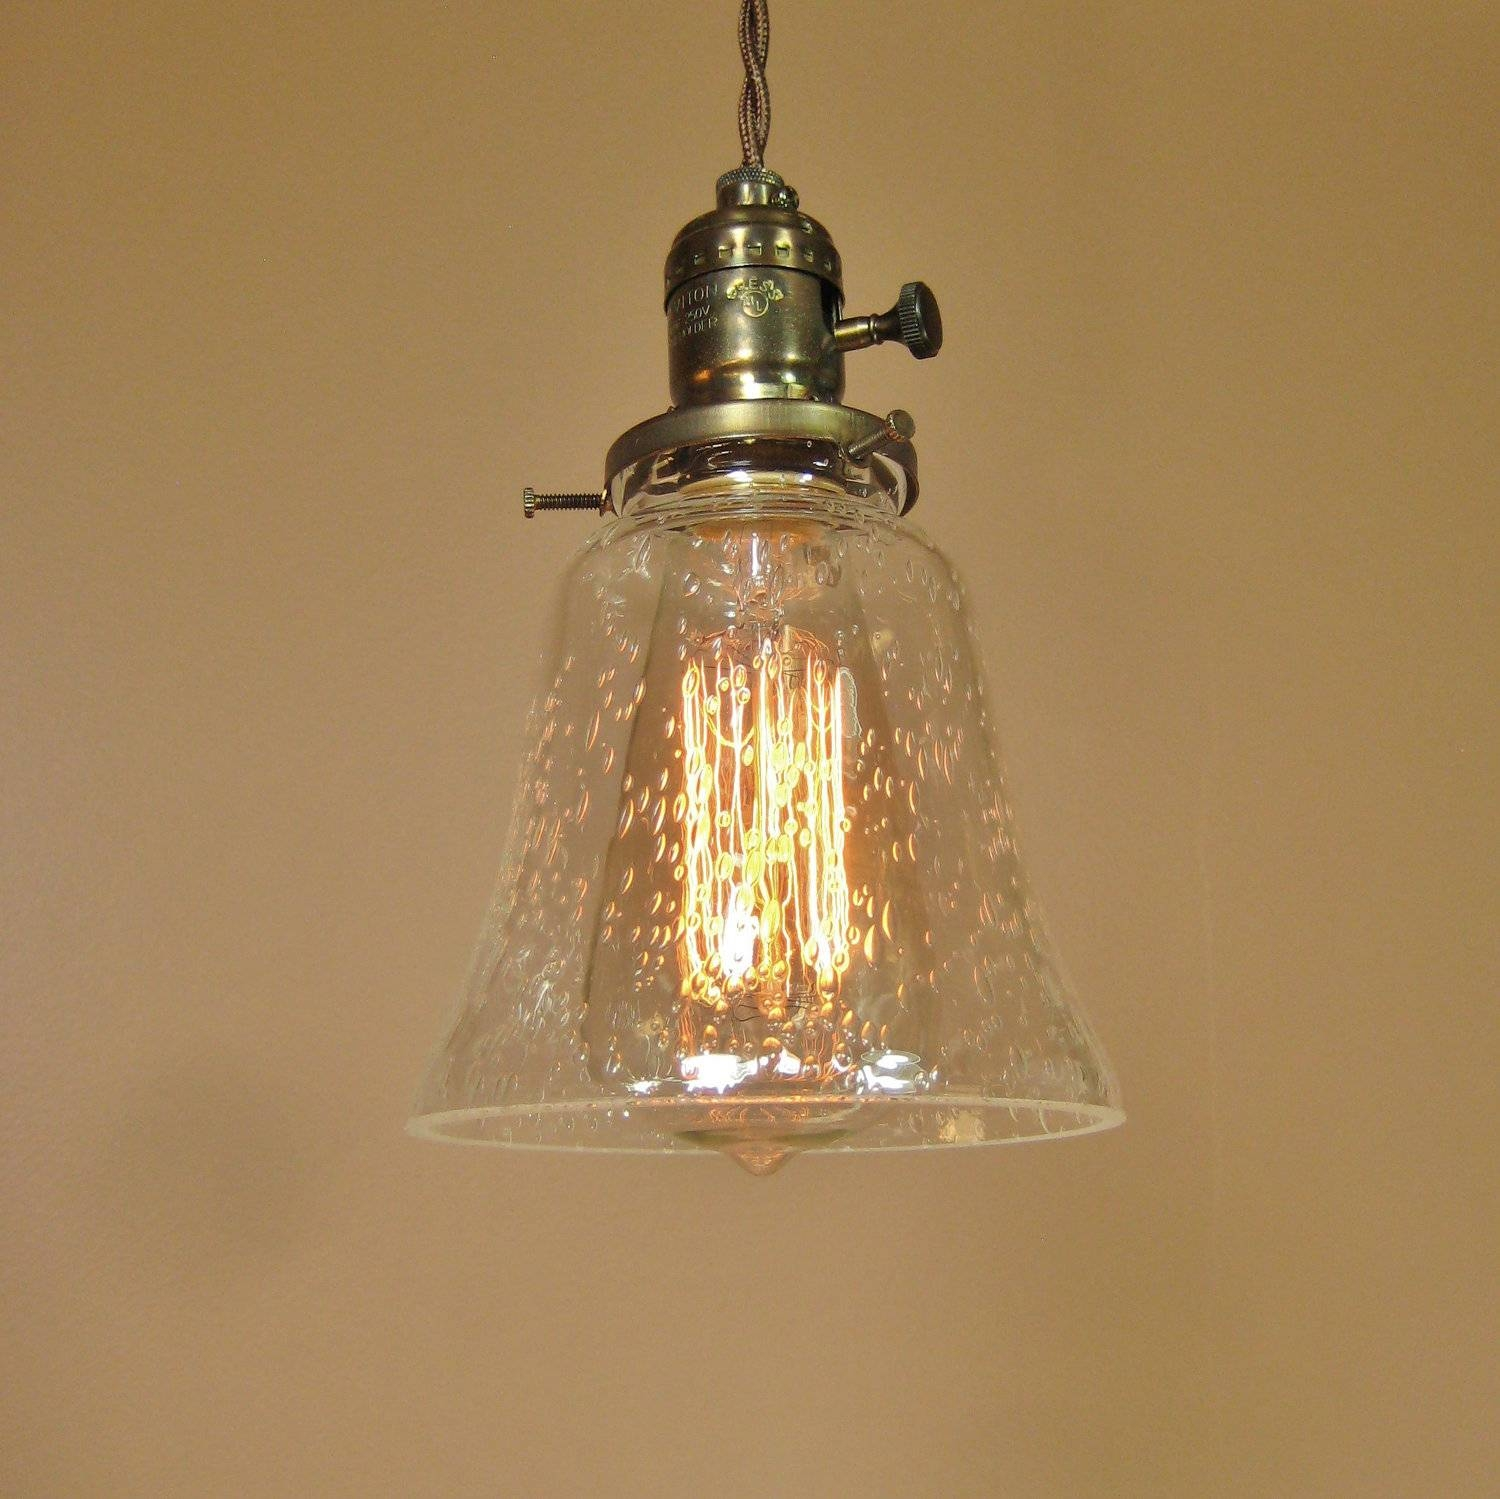 Vintage Glass Pendant Light - Baby-Exit in Unique Mini Pendant Lights (Image 15 of 15)